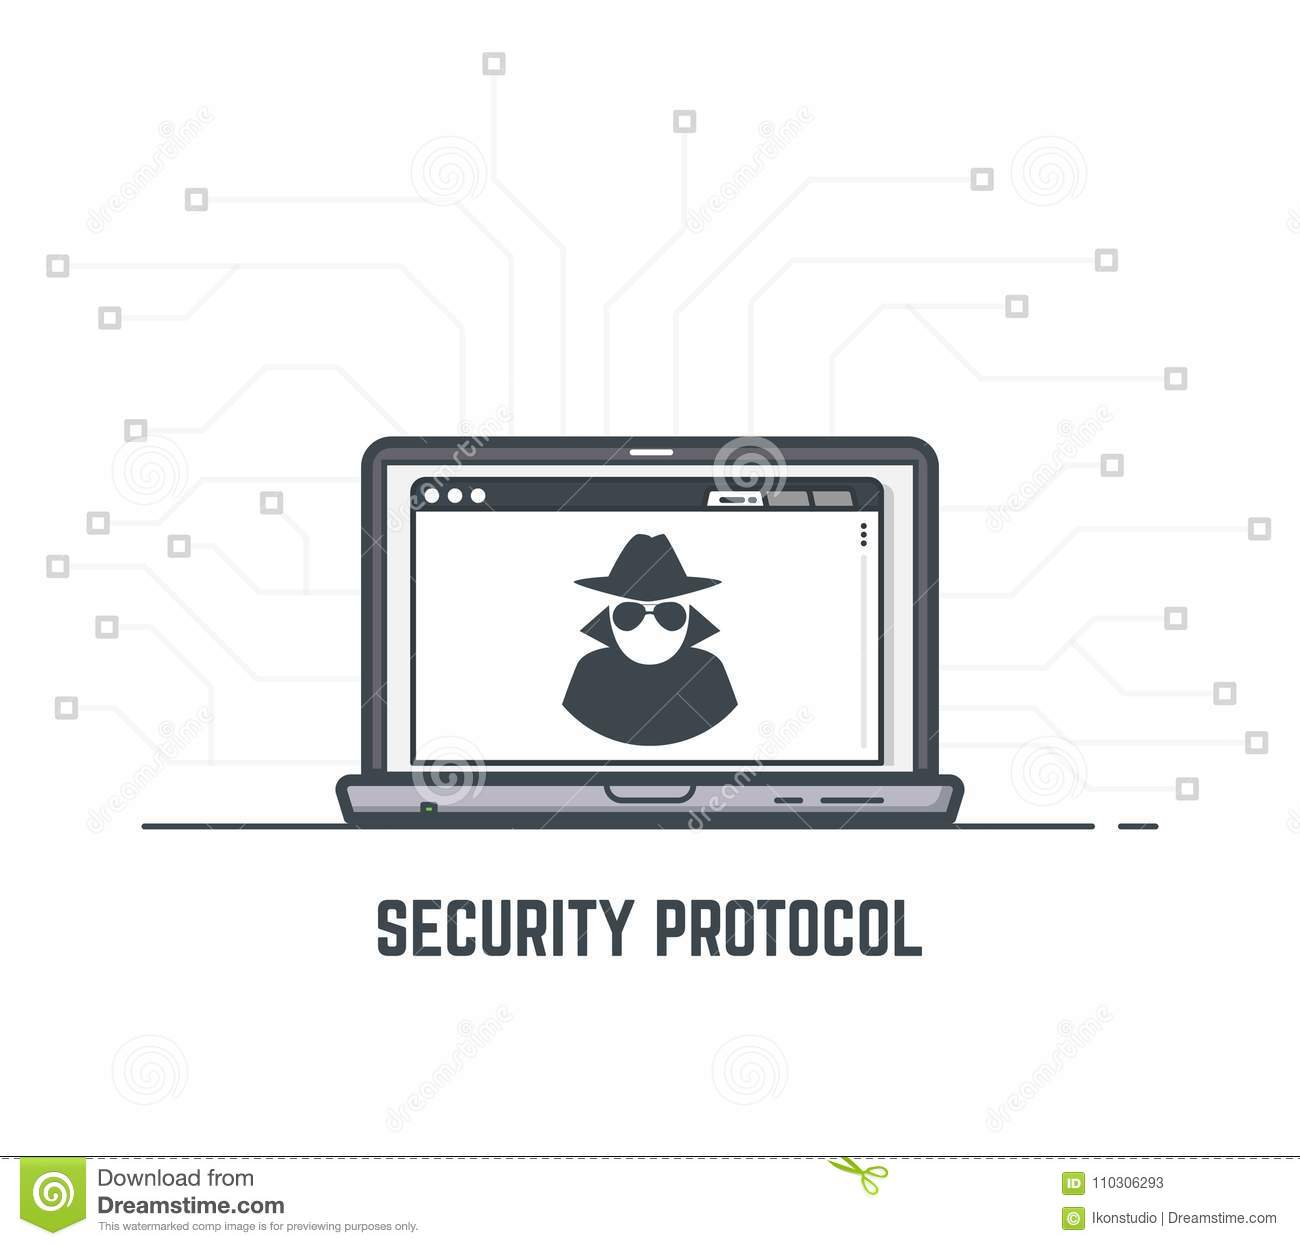 Security protocol stock vector  Illustration of icon - 110306293